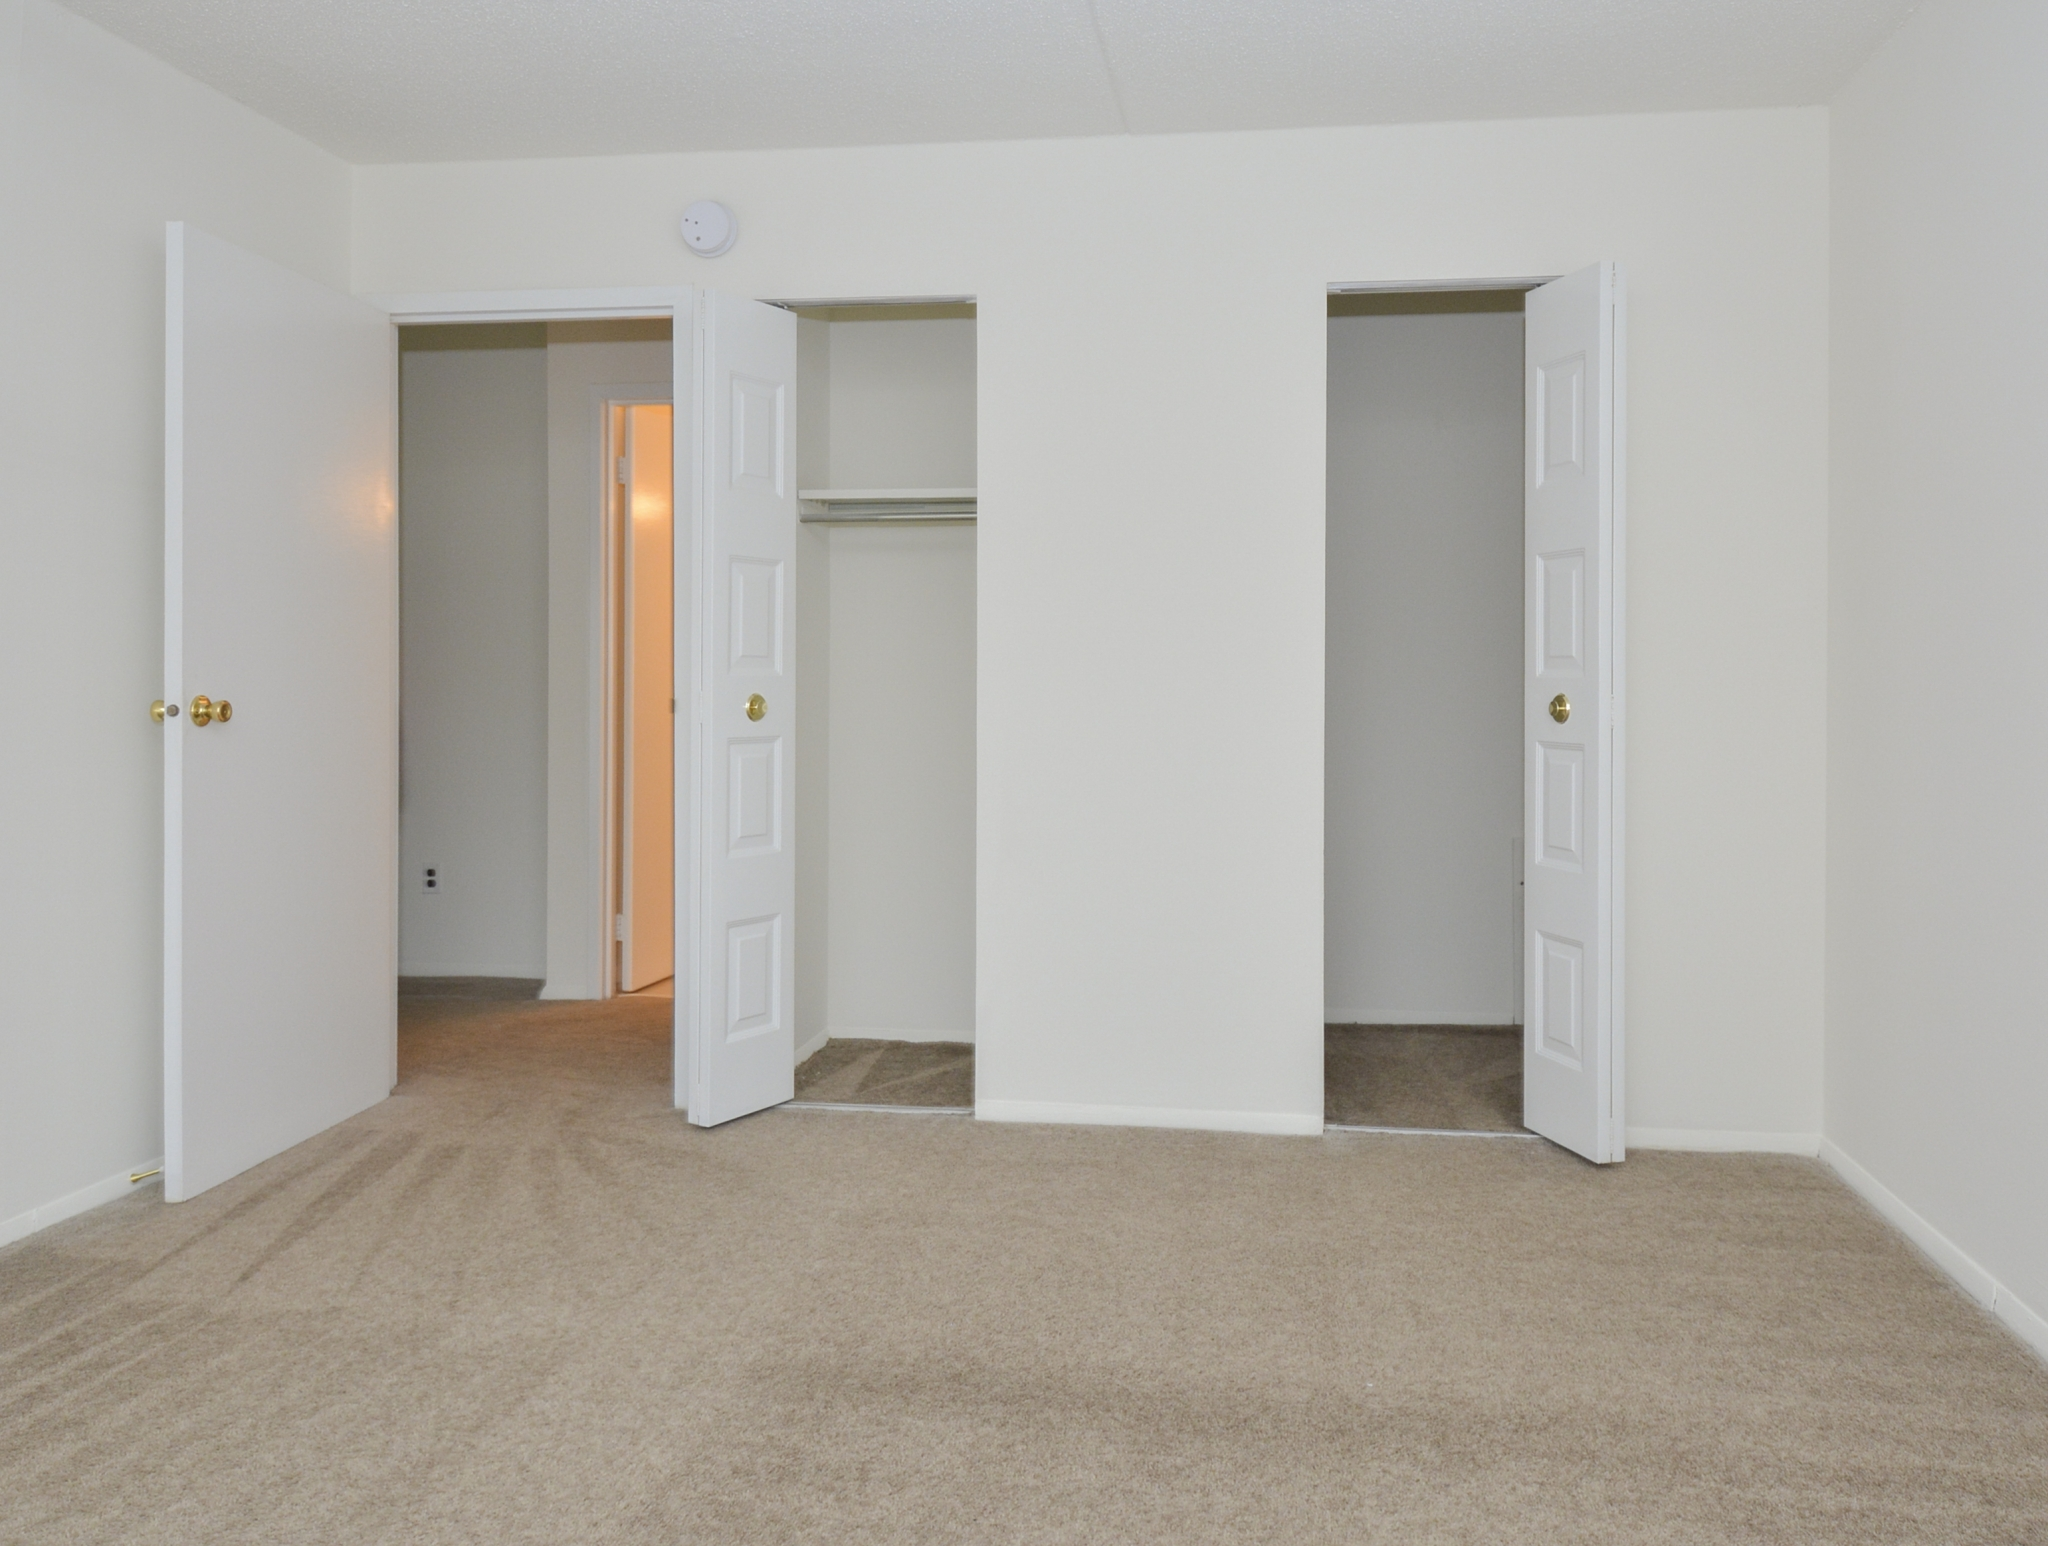 Gladstone Towers Sample Bedroom with Closet View | Apartments in Lansdowne PA